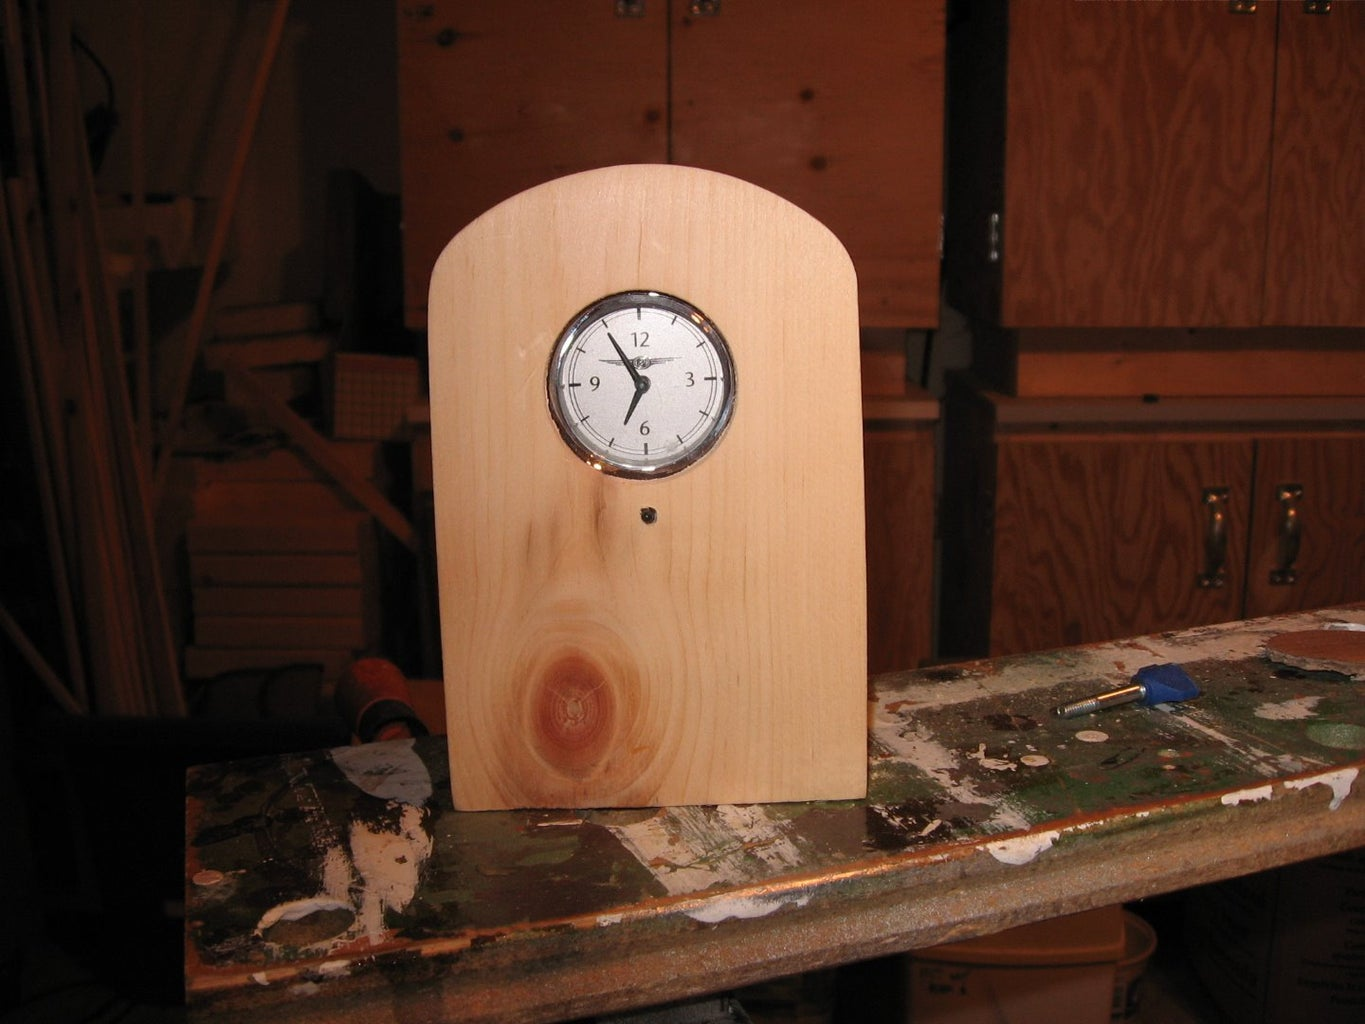 Mating the Clock With the Cabinet